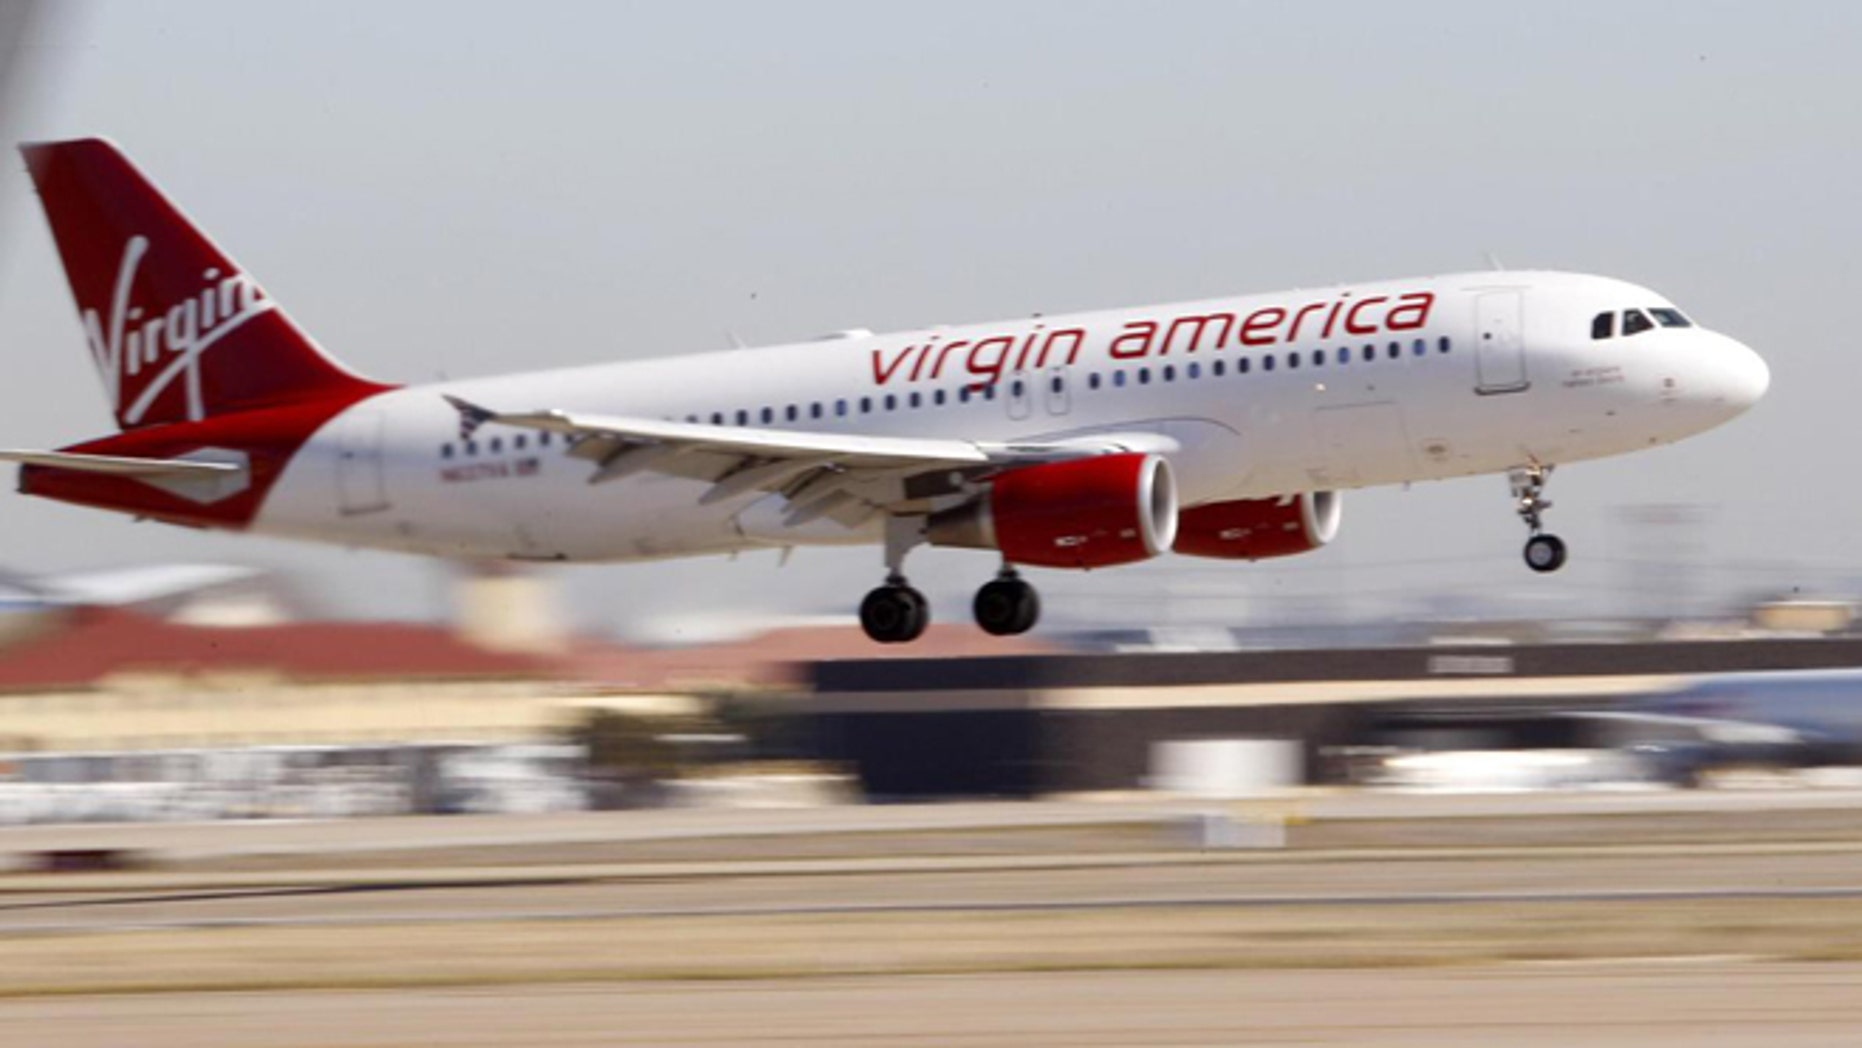 Despite declining industry performance, Virgin America has a great year for on-time performance and fewer lost bags in 2014.